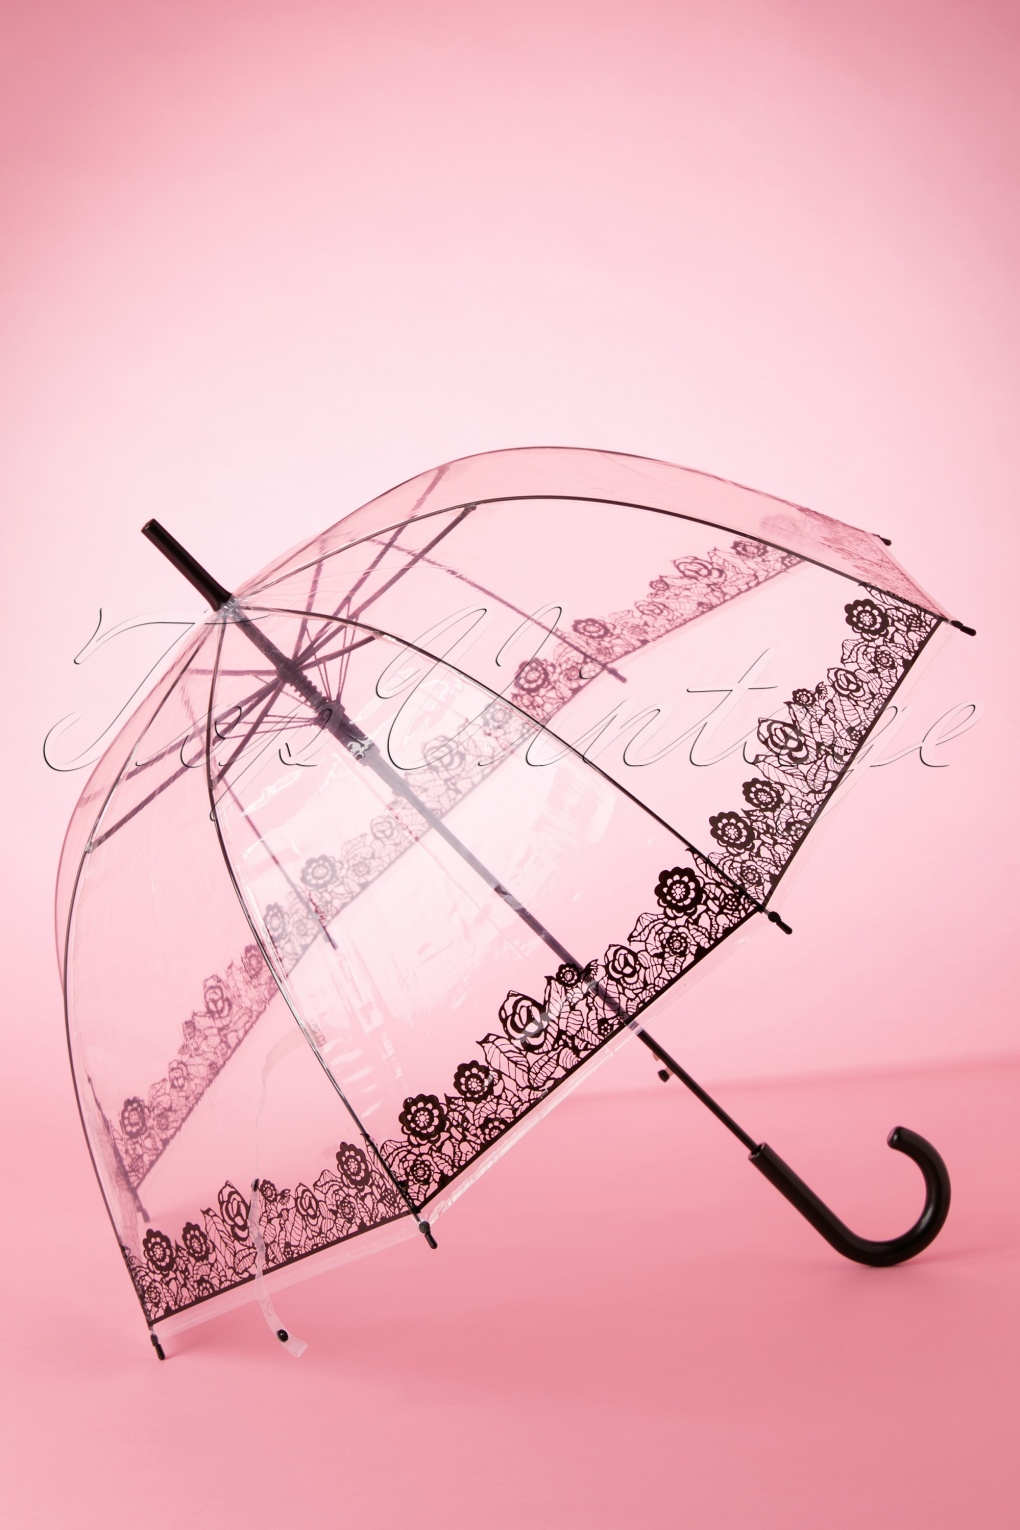 Vintage Style Parasols and Umbrellas 60s Dentelle Flower Transparent Dome Umbrella in Black £15.59 AT vintagedancer.com